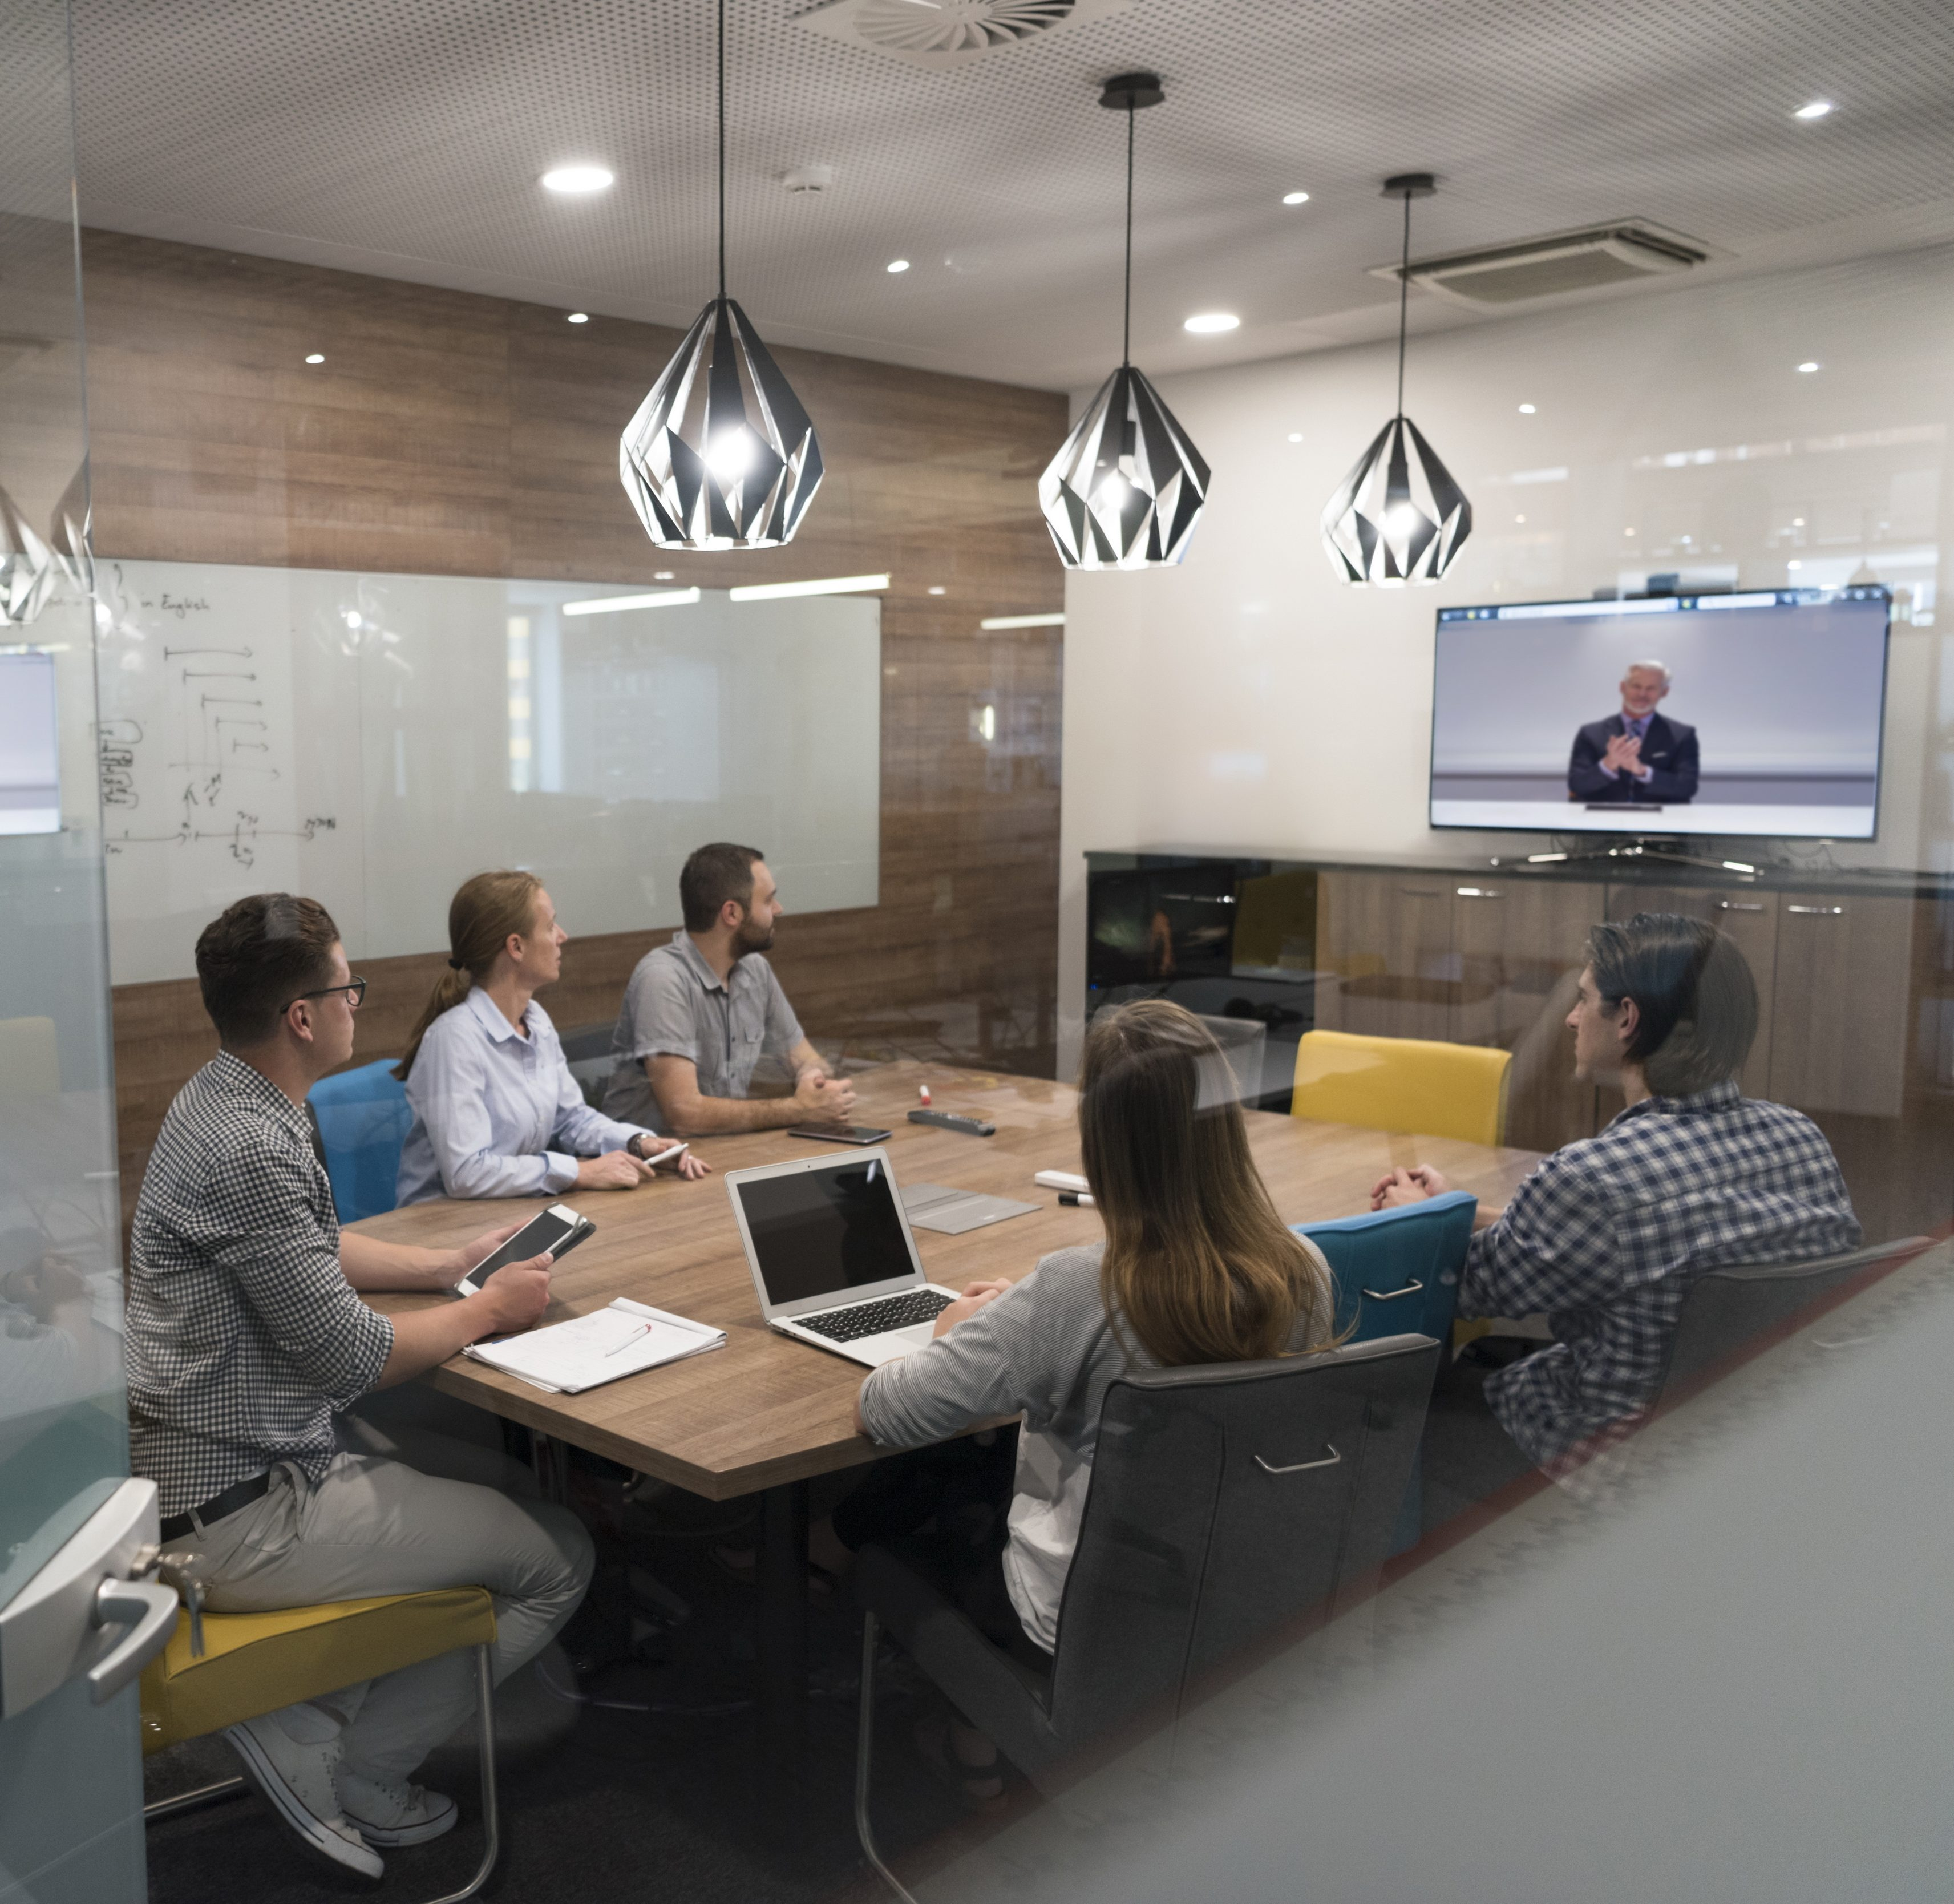 Image - Conference room